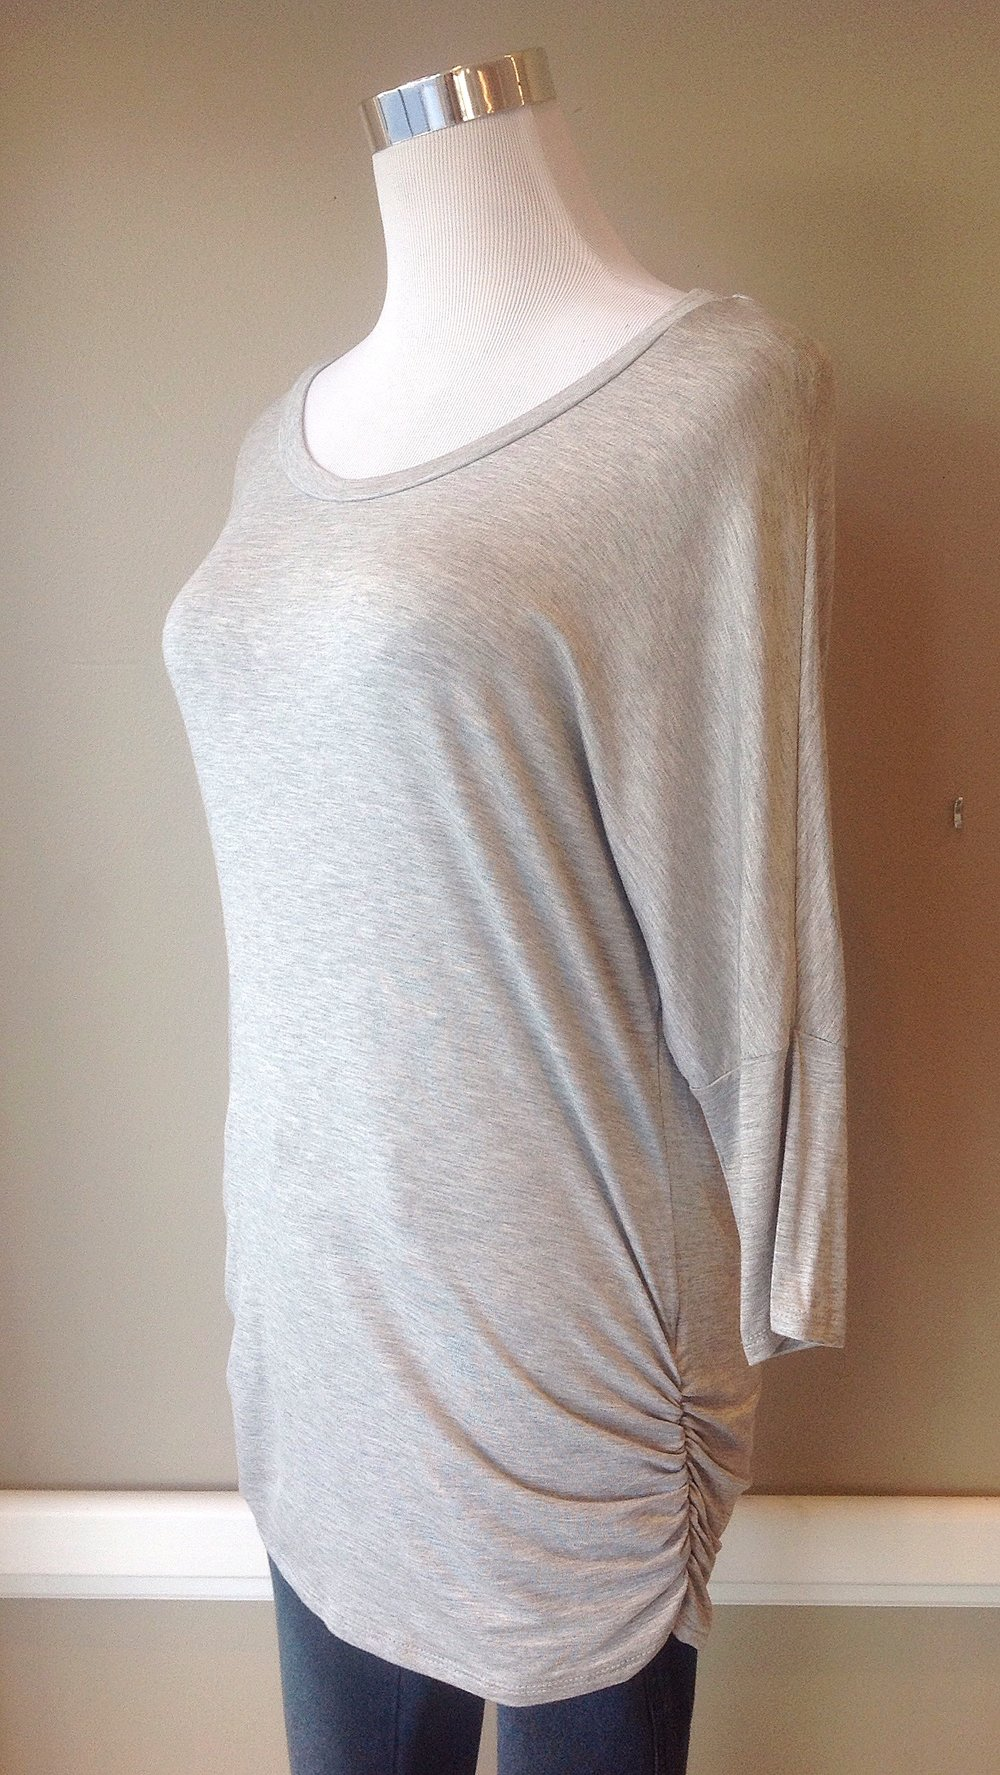 Heather grey jersey knit top with side ruching, $28